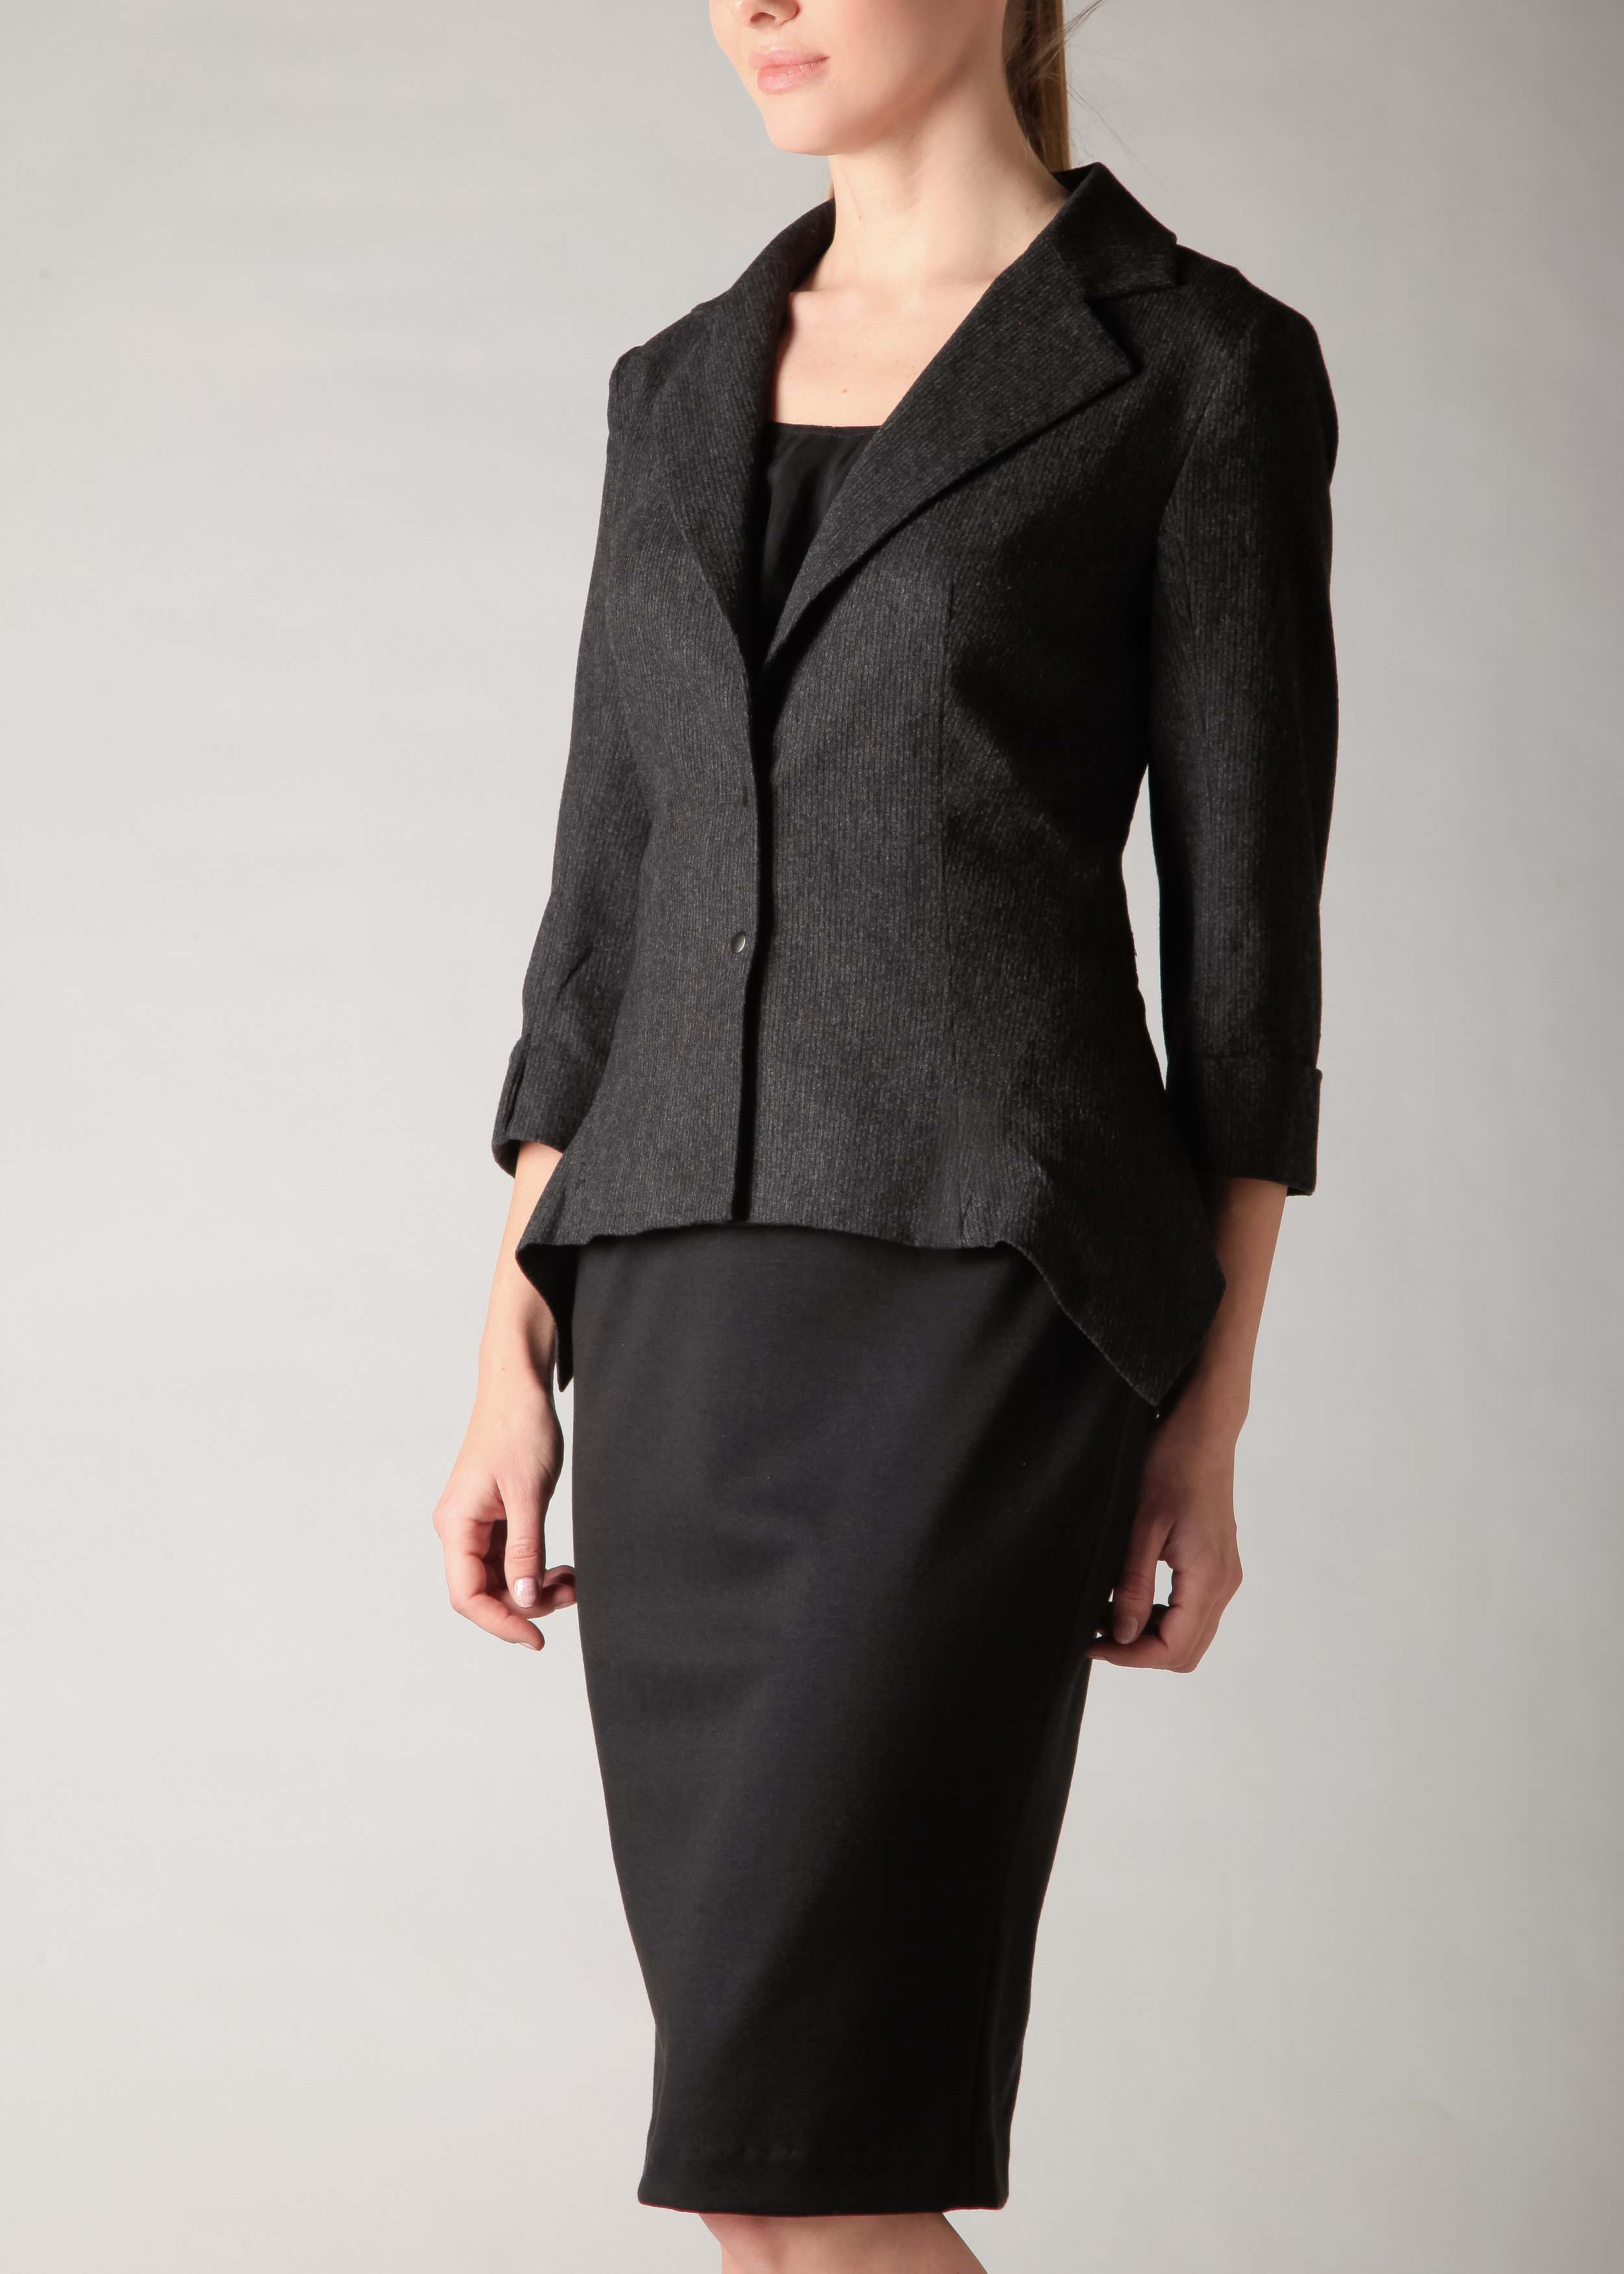 Match it With - Ponte Pencil Skirt